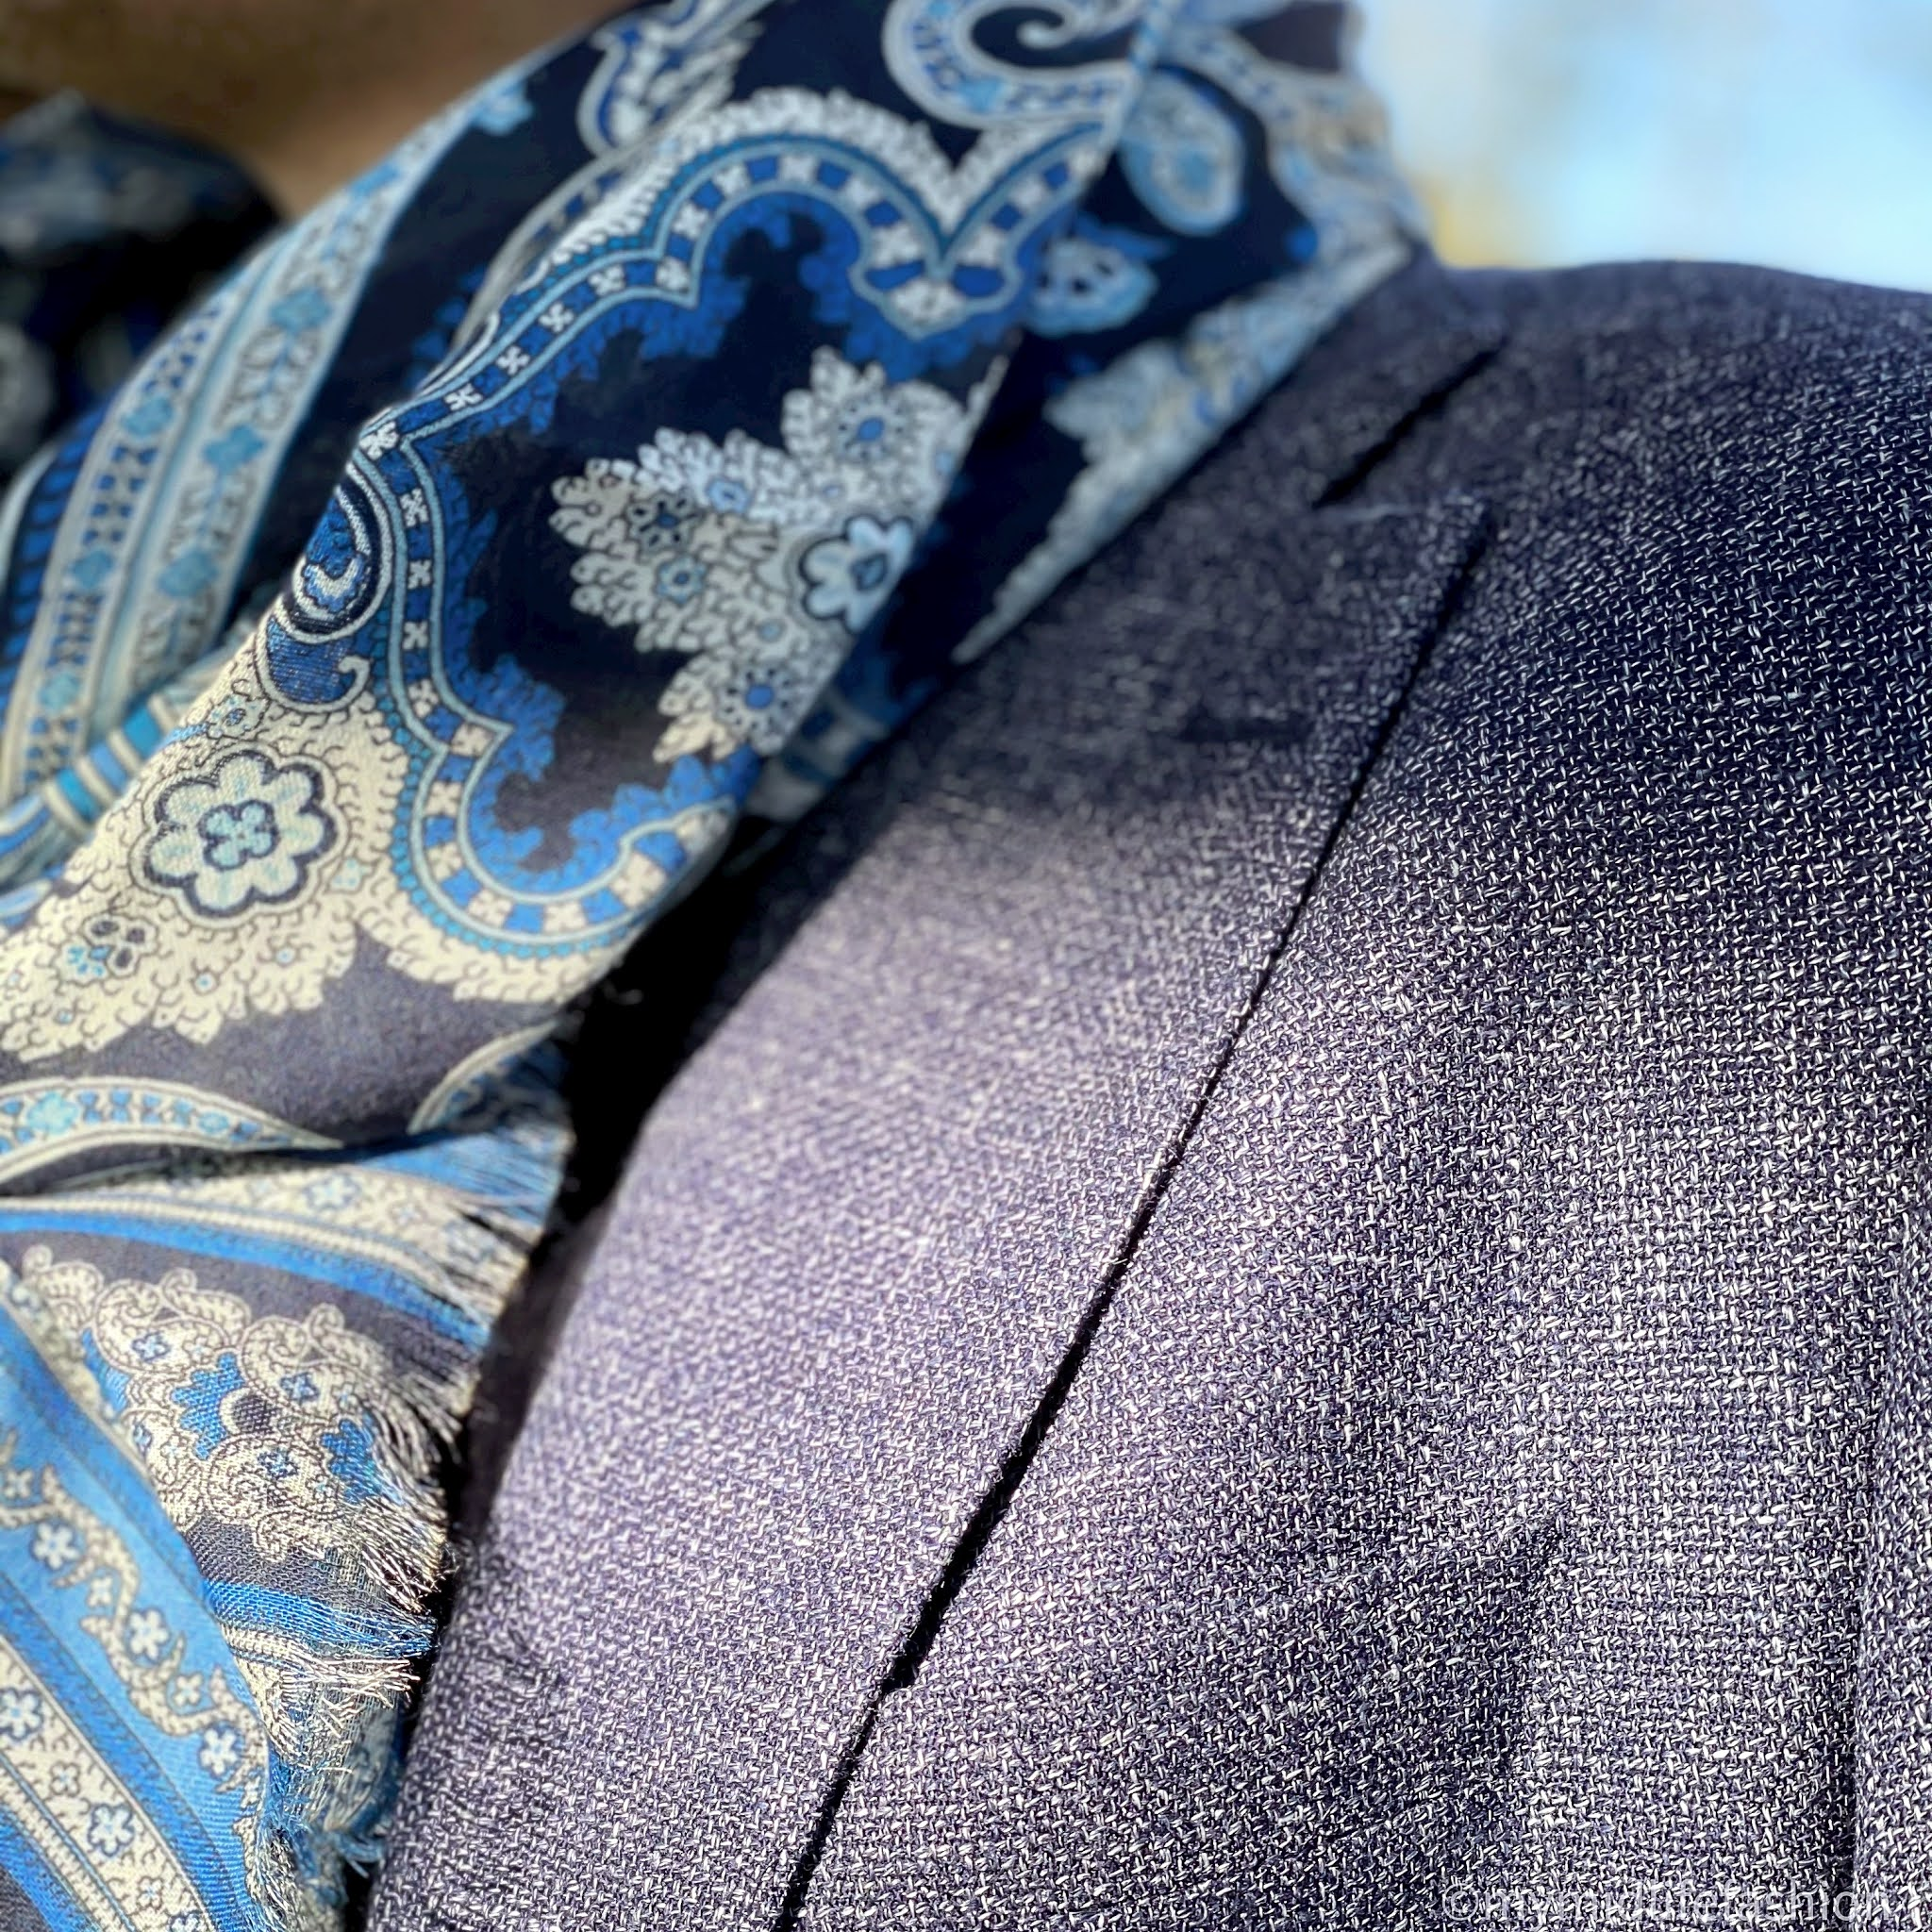 my midlife fashion, hawes and Curtis Italian wool linen blend mens jacket, hawes and curtain merino wool polo neck jumper, hawes and Curtis navy and blue big paisley scarf